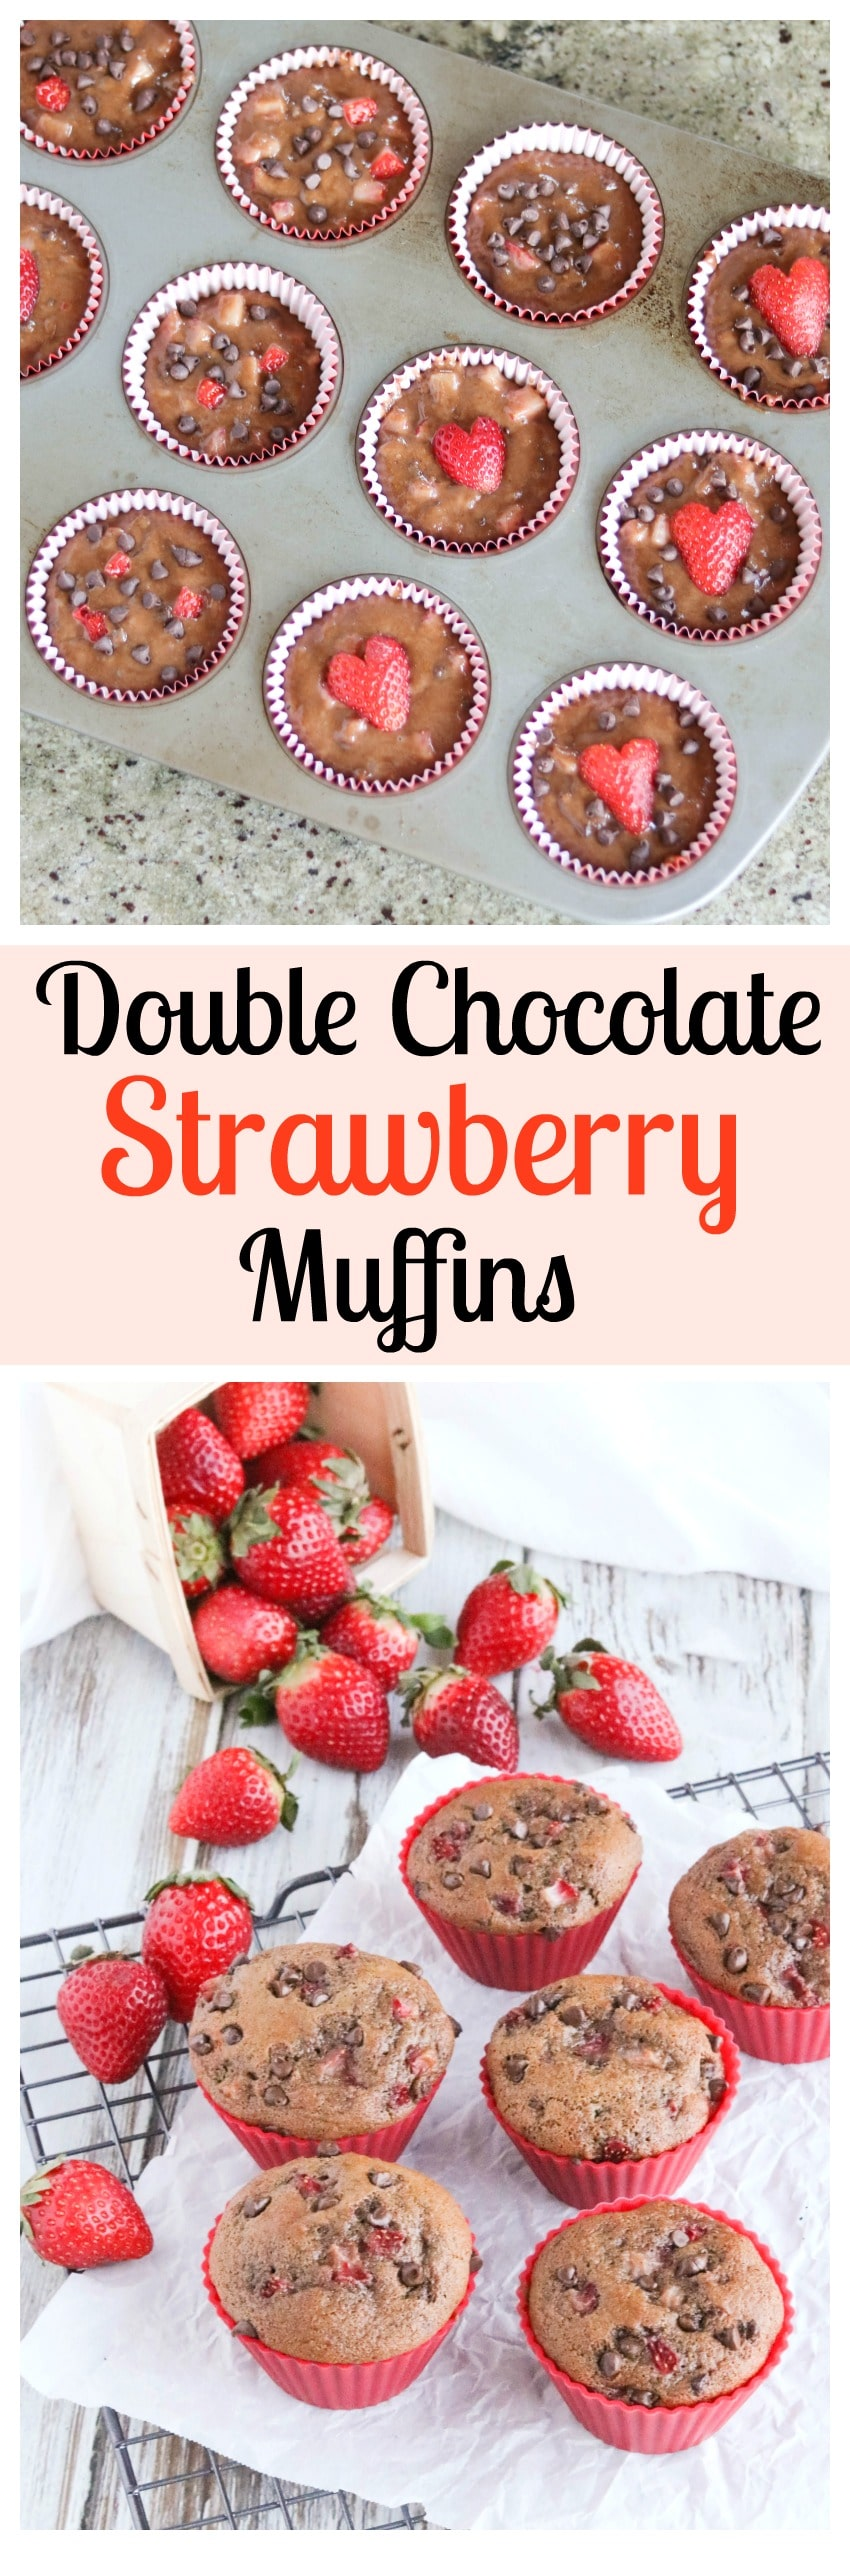 These Healthy Double Chocolate Muffins with Fresh Strawberries are loaded with rich chocolate flavor and juicy berries! So decadent, yet full of whole grains and much lower in fat! Perfect for snacks and on-the-go breakfasts! | www.TwoHealthyKitchens.com